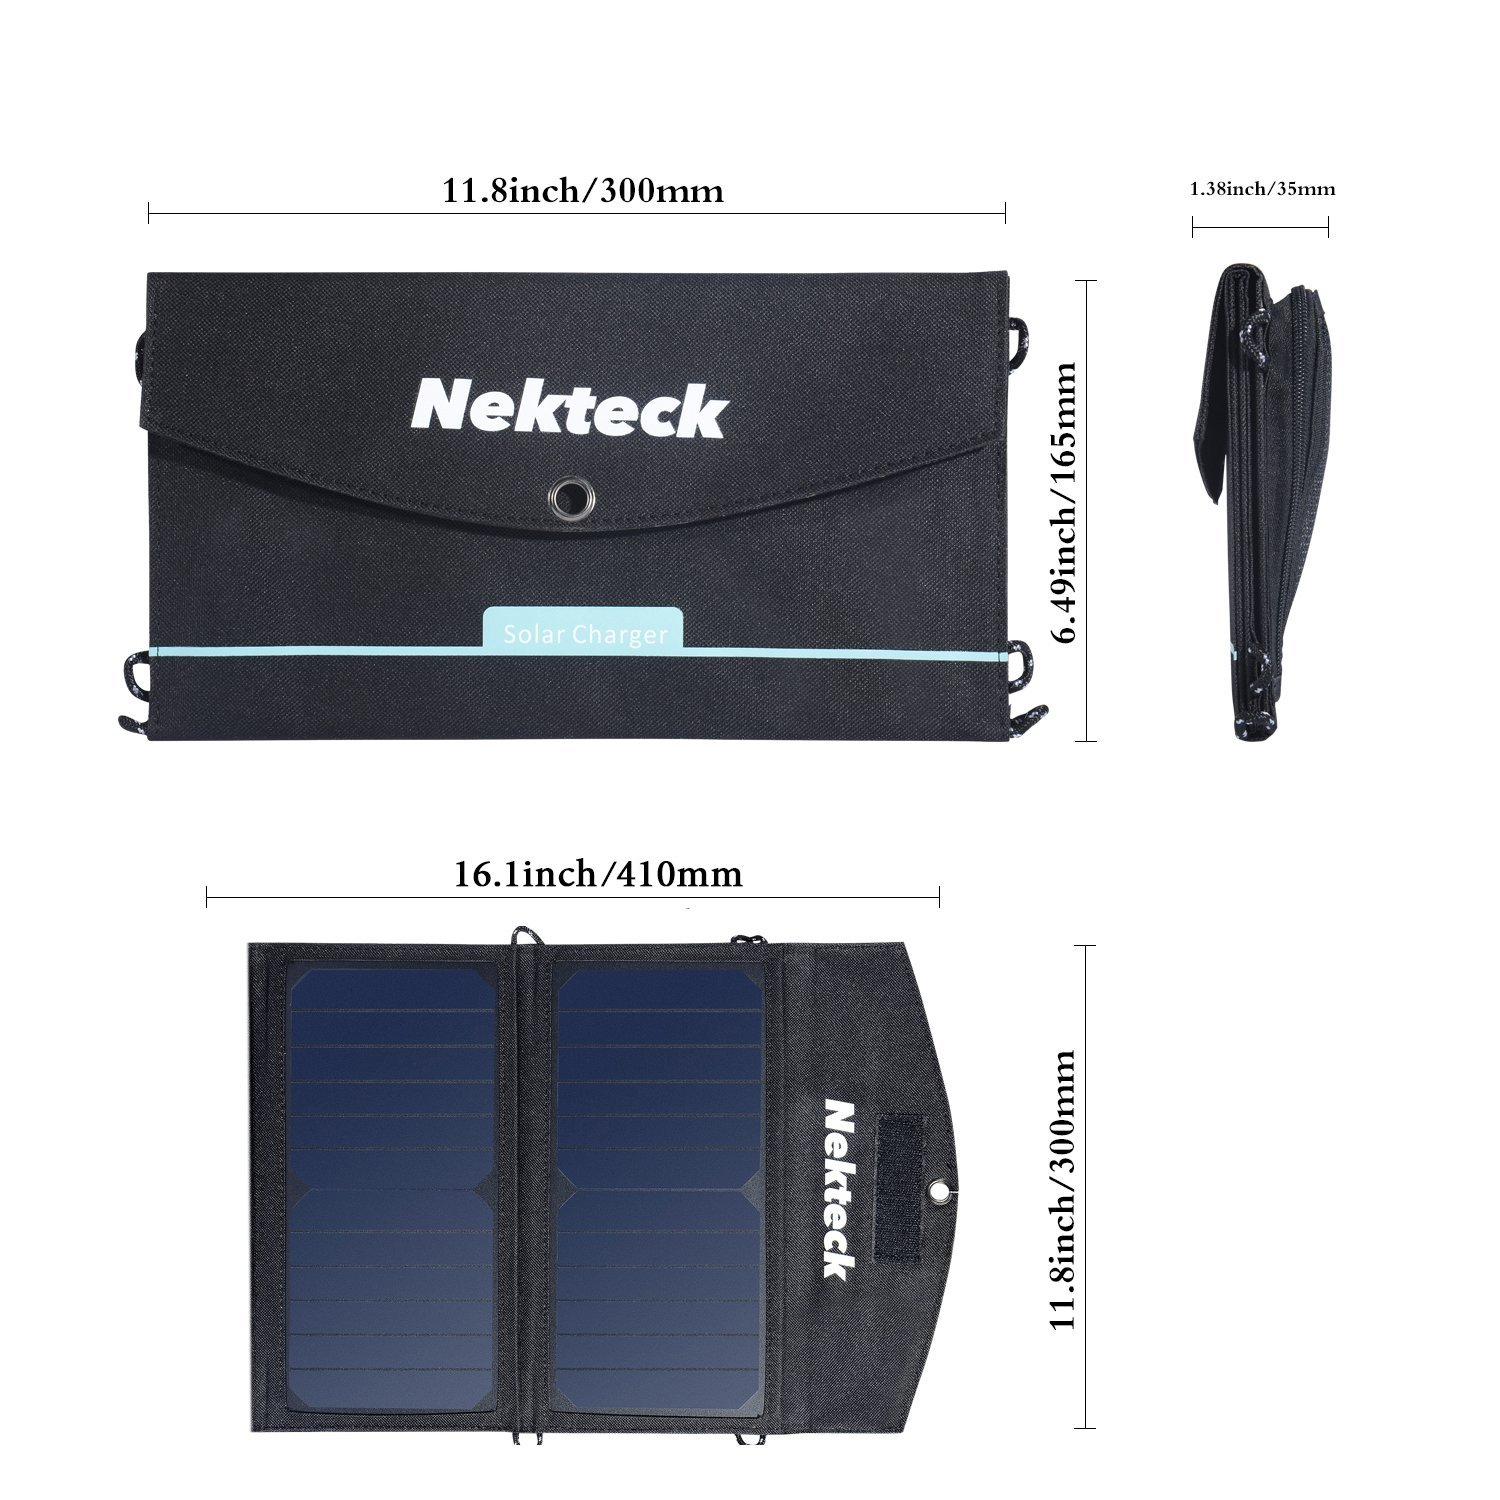 Nekteck 14W Solar Charger with 2-Port USB Charger Build with High efficiency Solar Panel Cell for iPhone 6s / 6 / Plus, SE, iPad, Galaxy S6/S7/ Edge/ Plus, Nexus 5X/6P, any USB devices, and more by Nekteck (Image #6)